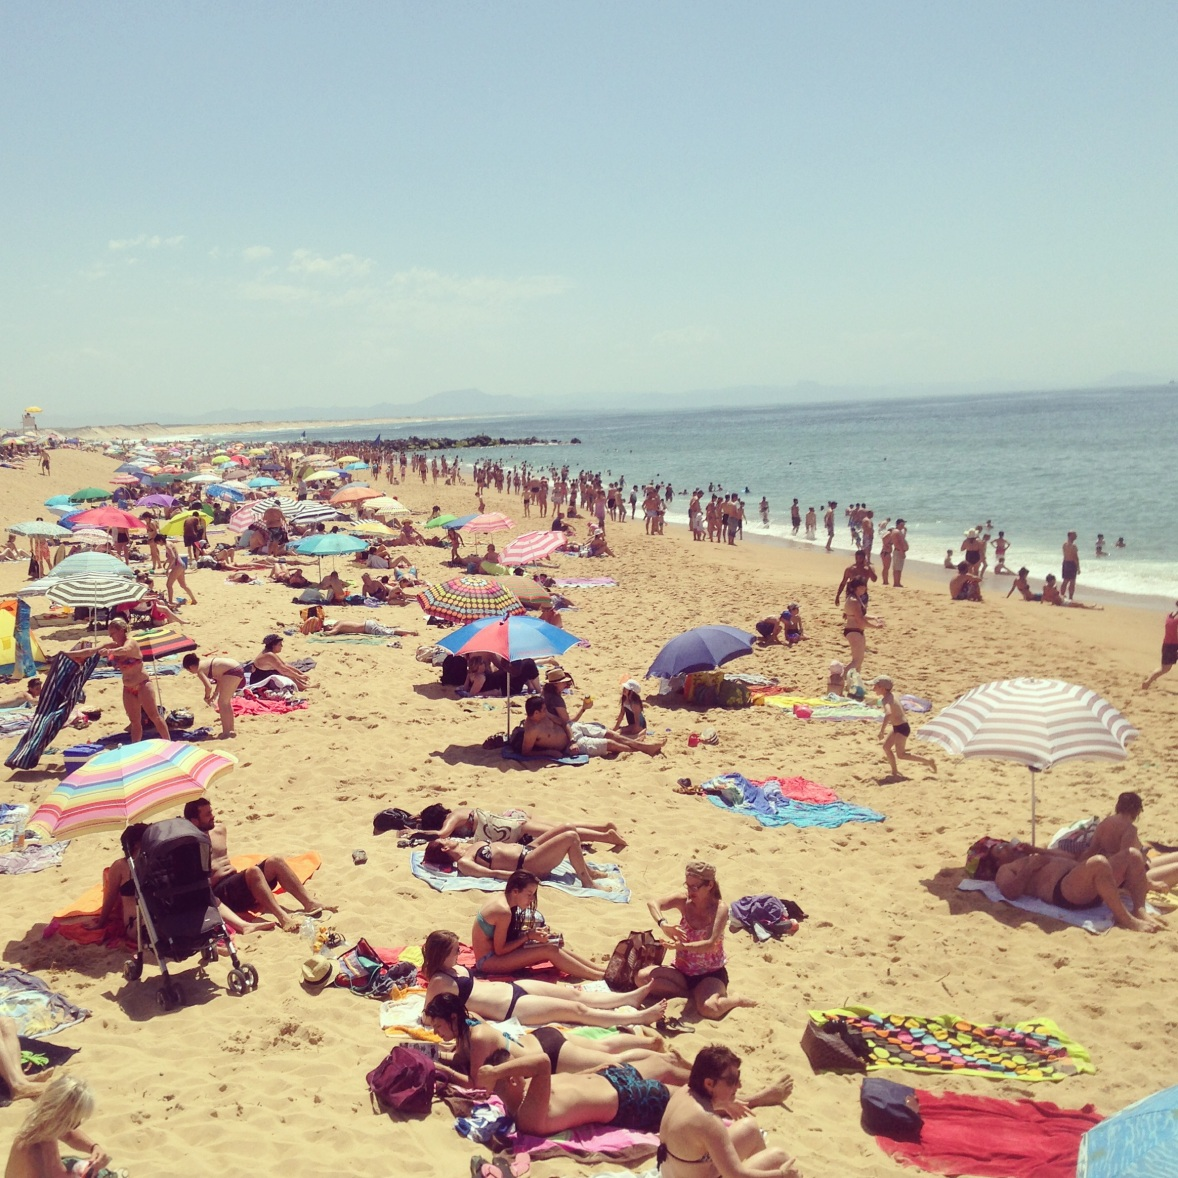 I visited Caperton at a French holiday.  It is a very crowed beach with a nice long stretch of boardwalk and lively environment